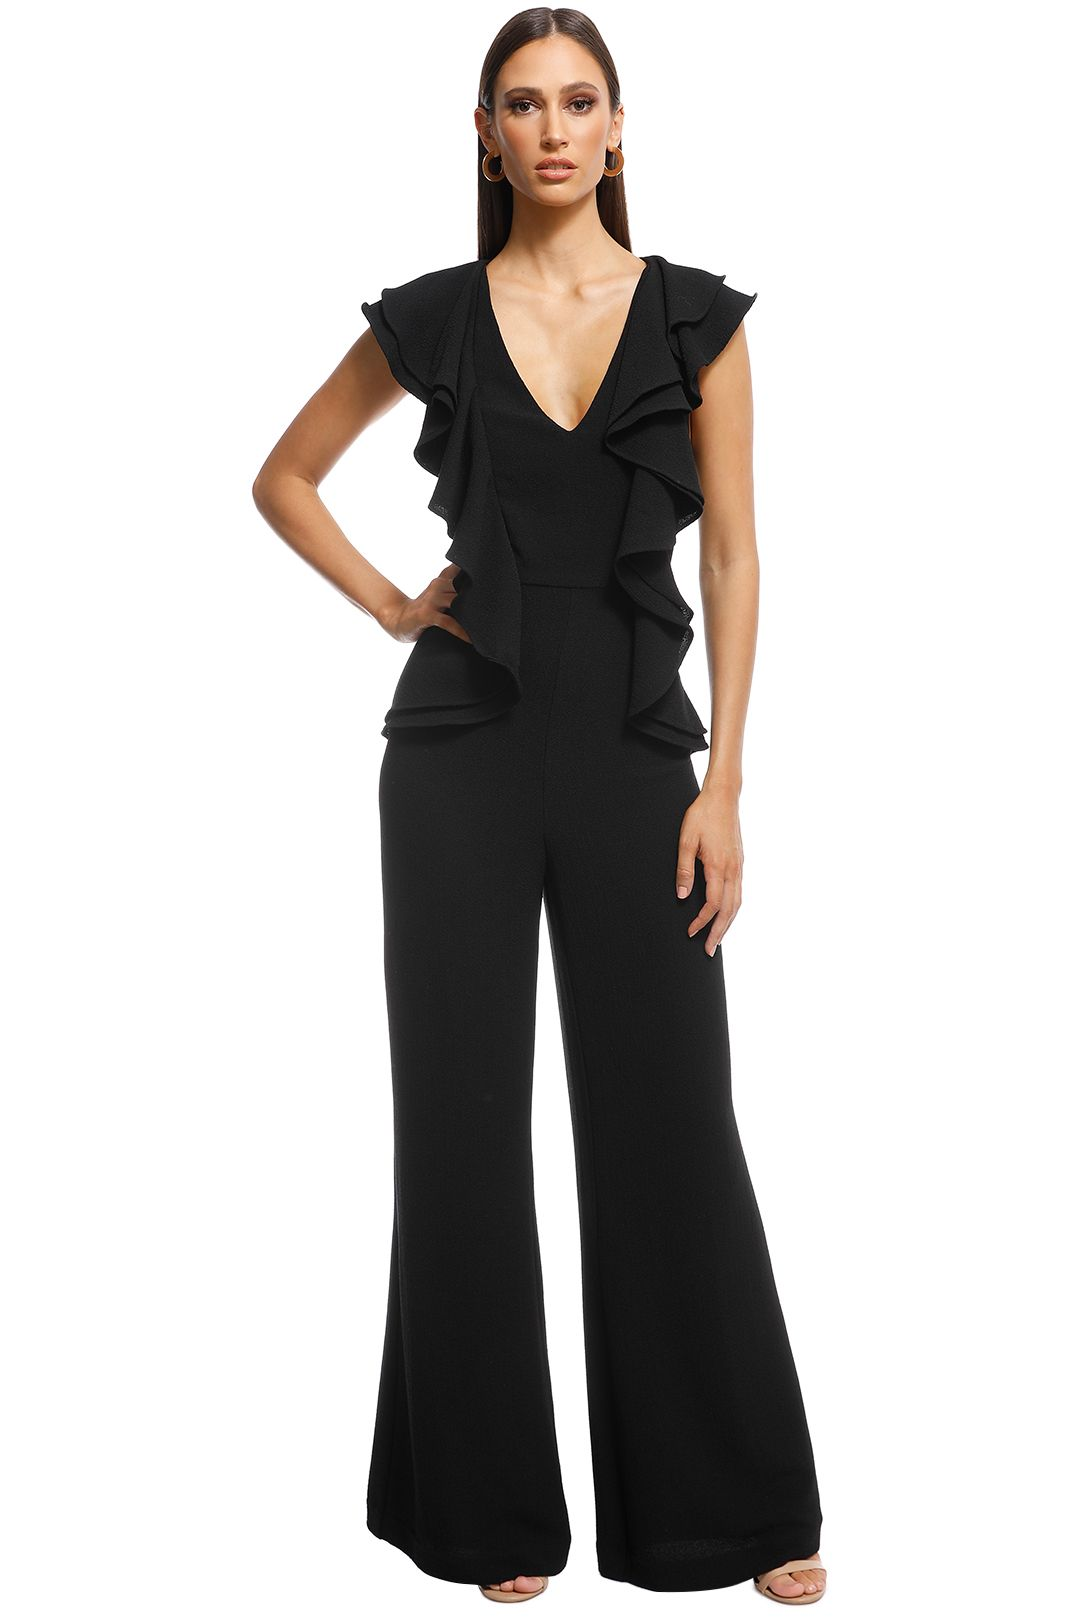 Cameo - Metal Clouds Pantsuit - Black - Front